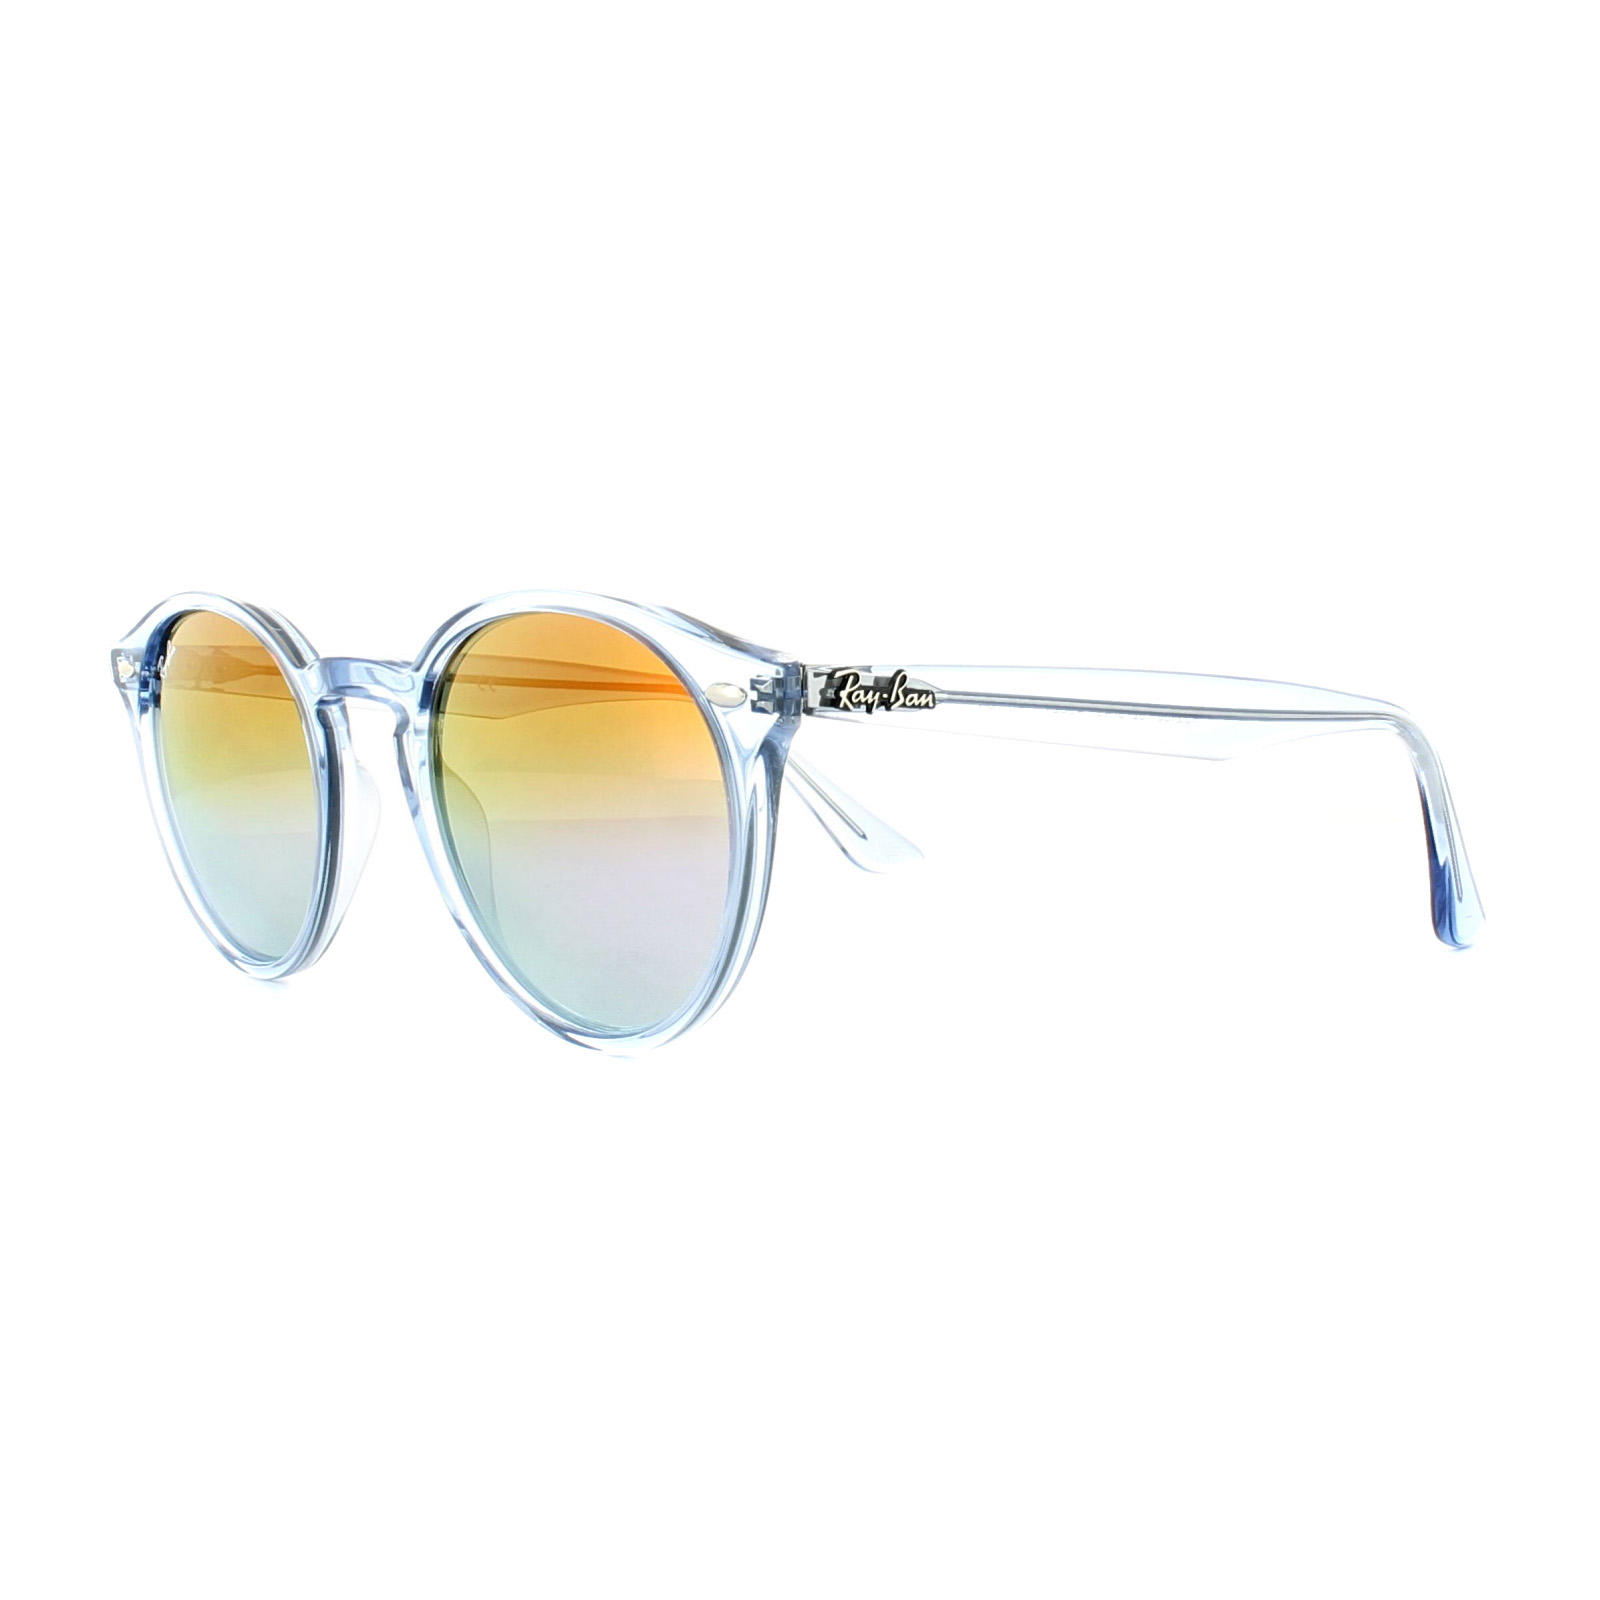 4a666b7abad Sentinel Ray-Ban Sunglasses 2180 6278A9 Light Blue Violet Gradient Mirror